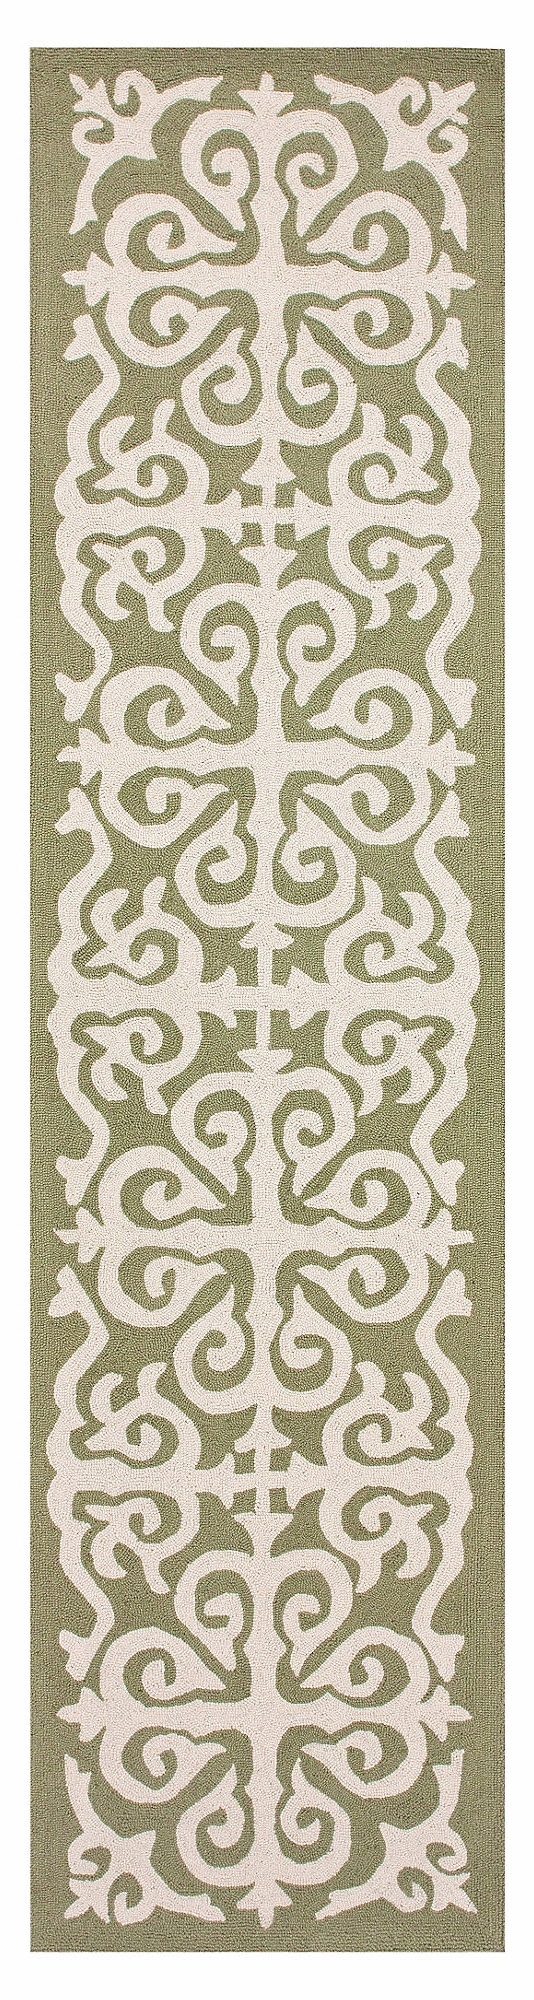 Scroll Trellis Runner, Green.  I would like this for my entry way!